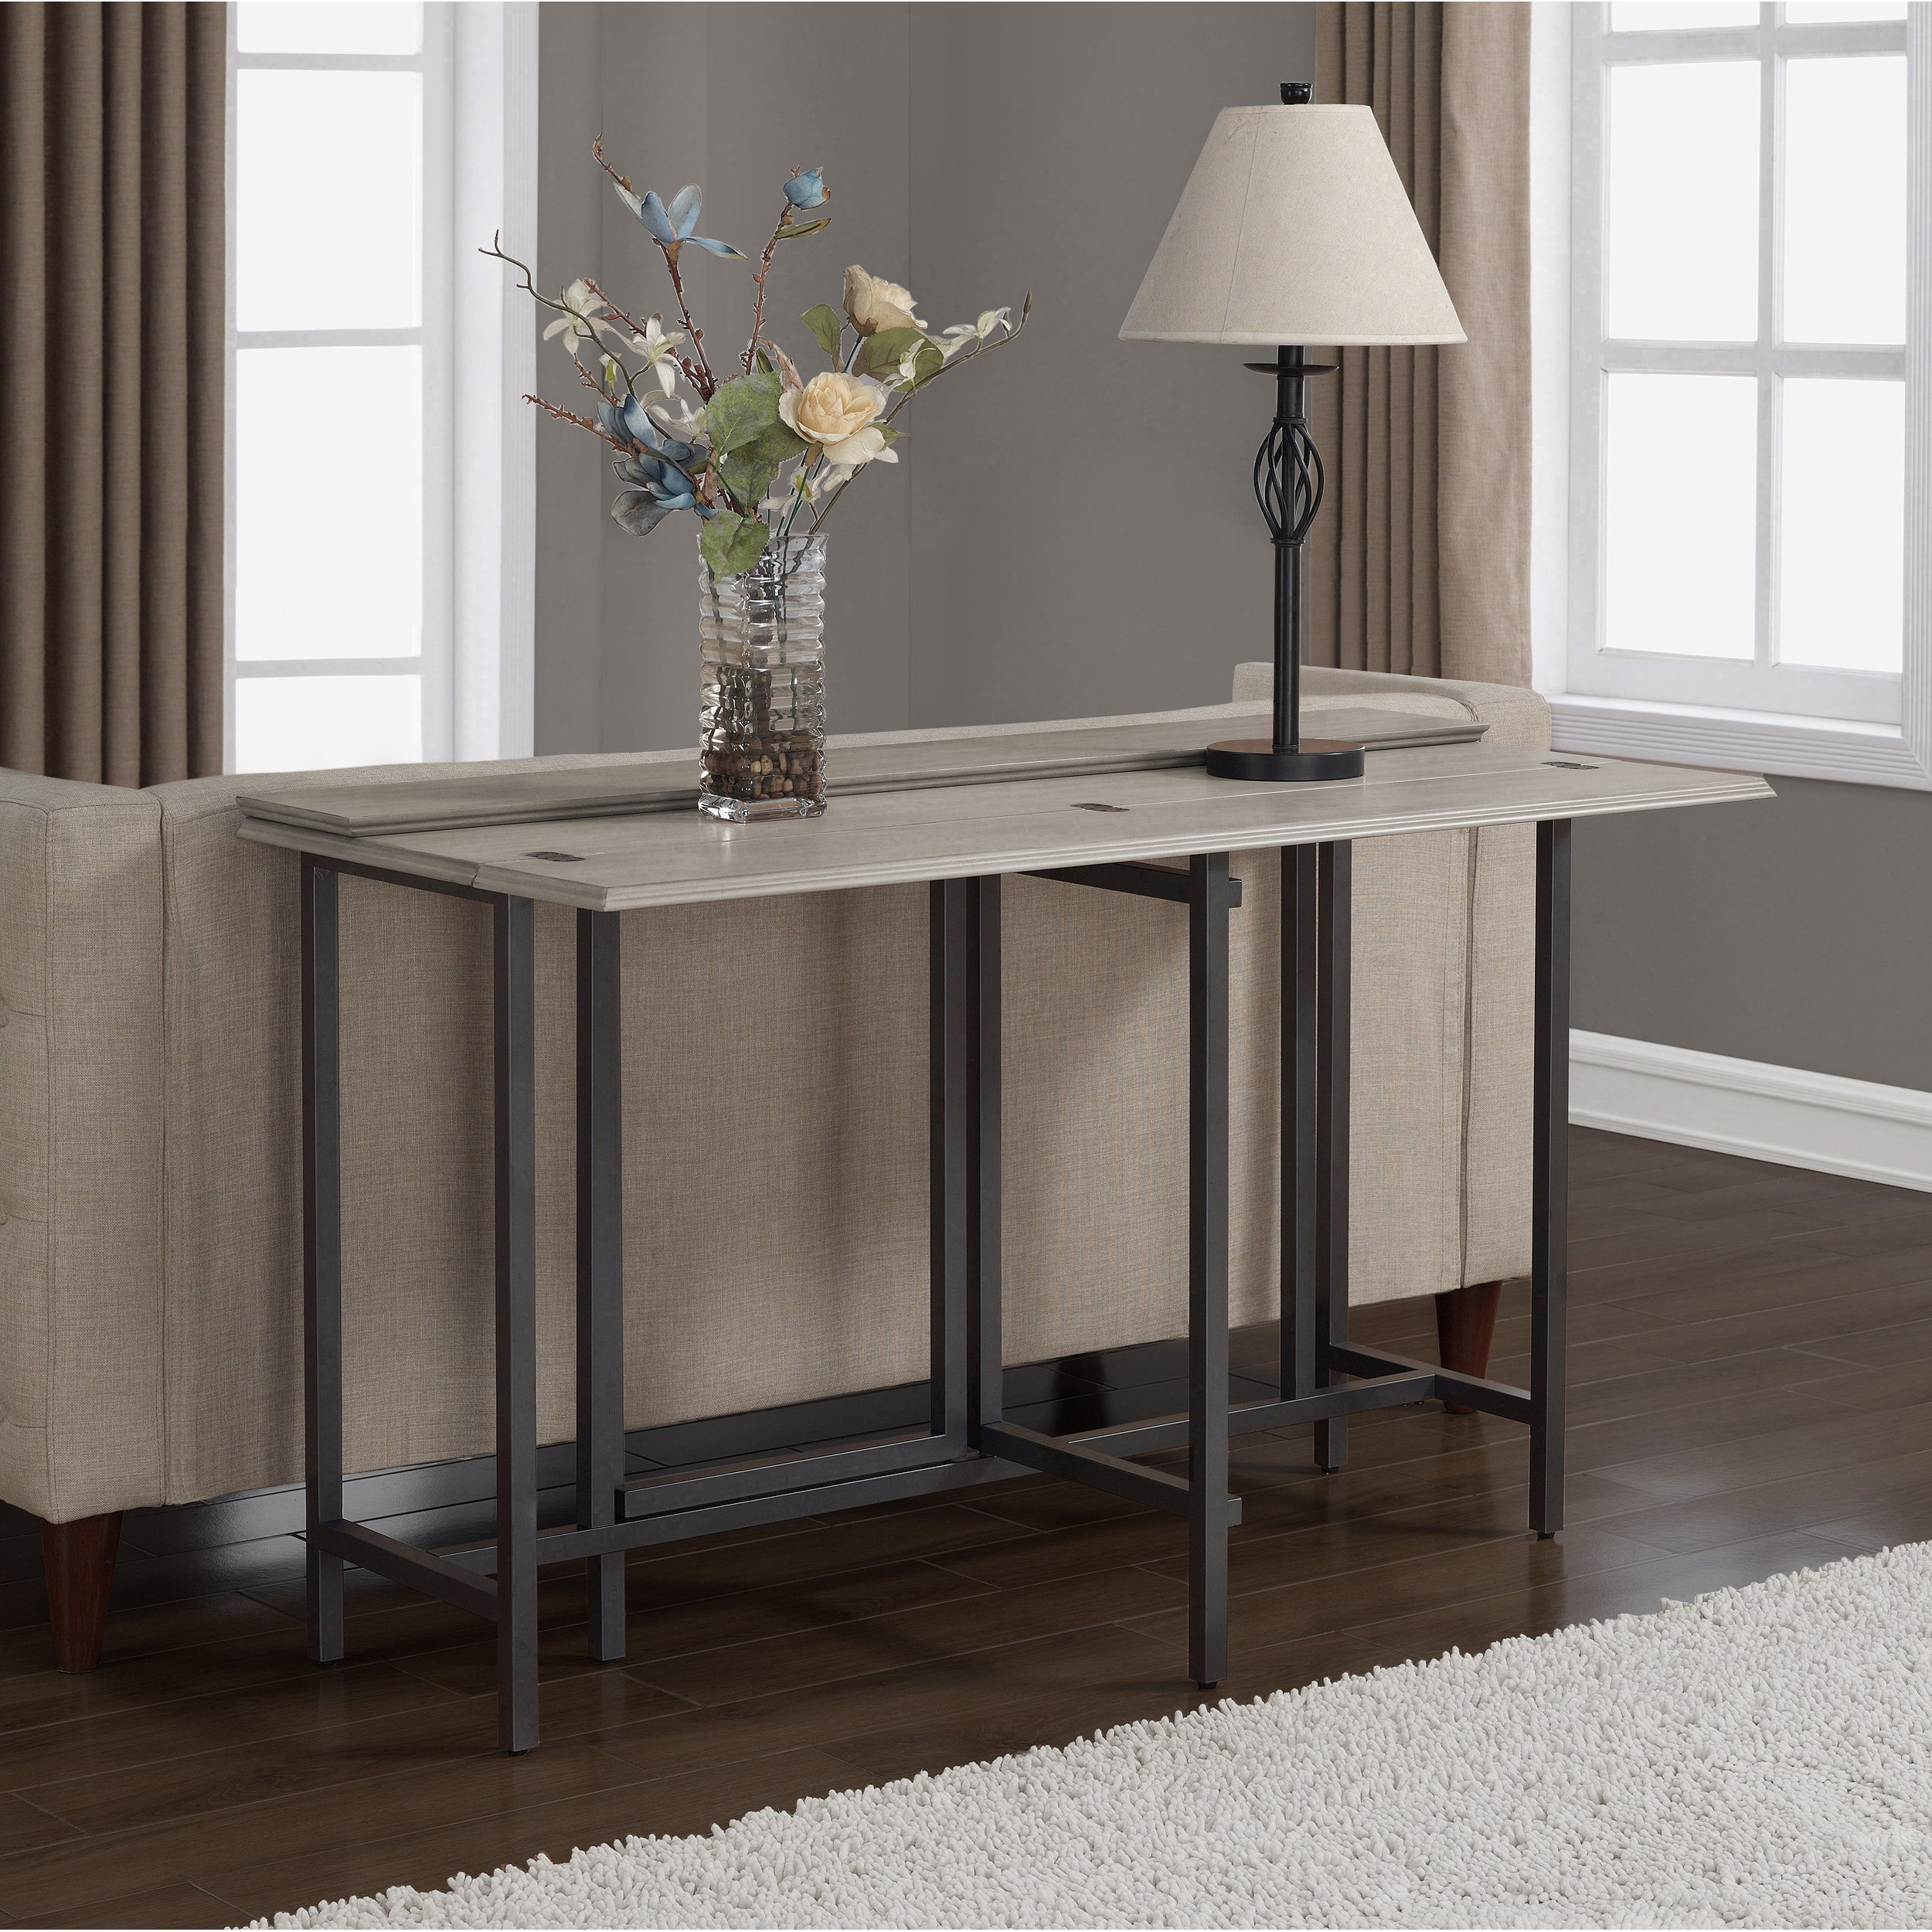 Convertible Dining Table Wood Contemporary Expandable Home Console Kitchen Table by I Love Living (Image #7)